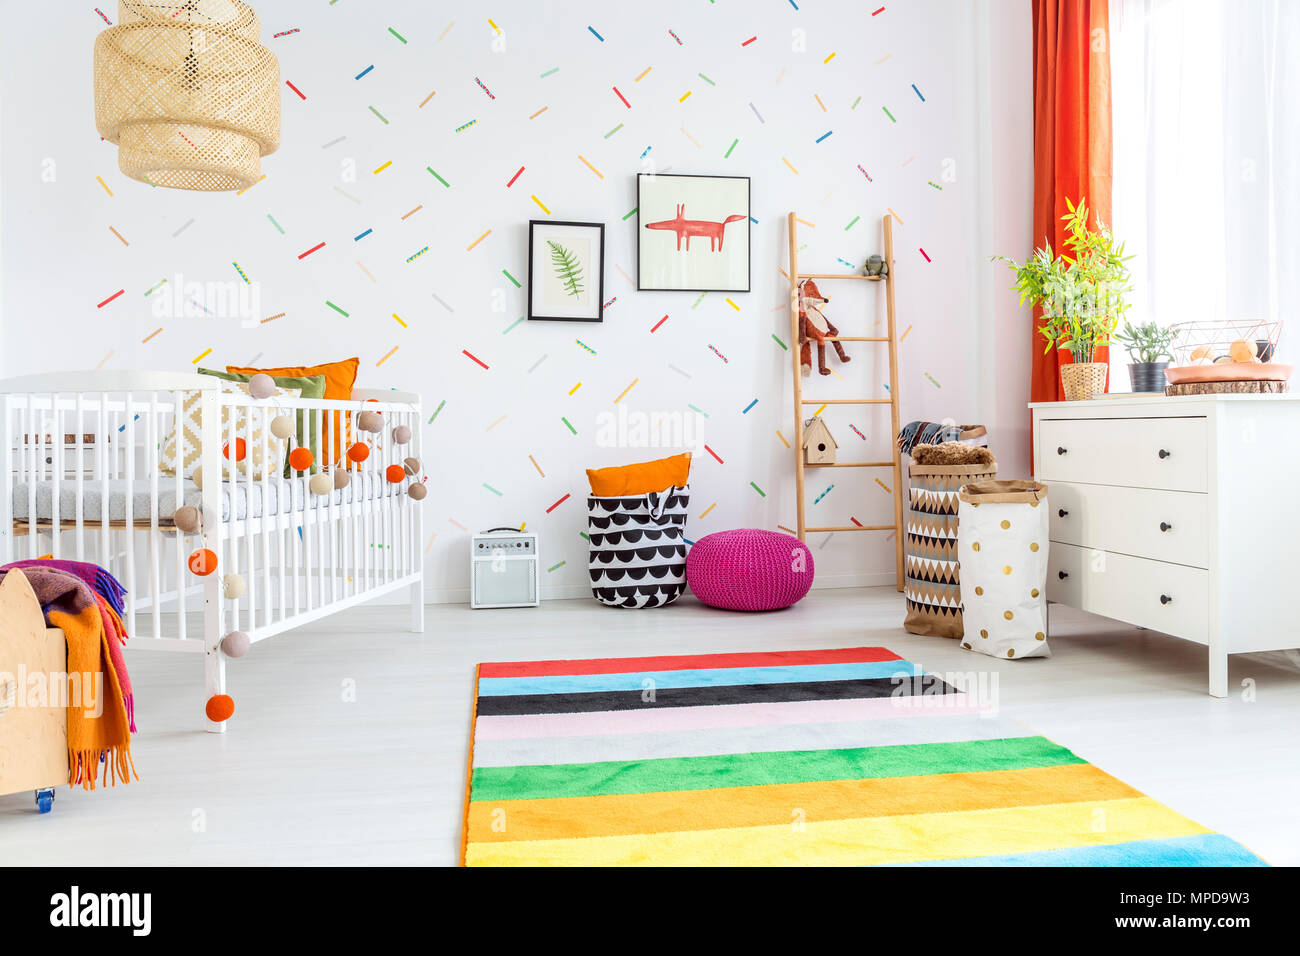 White Baby Room With Cot And Colorful Rug Stock Photo Alamy